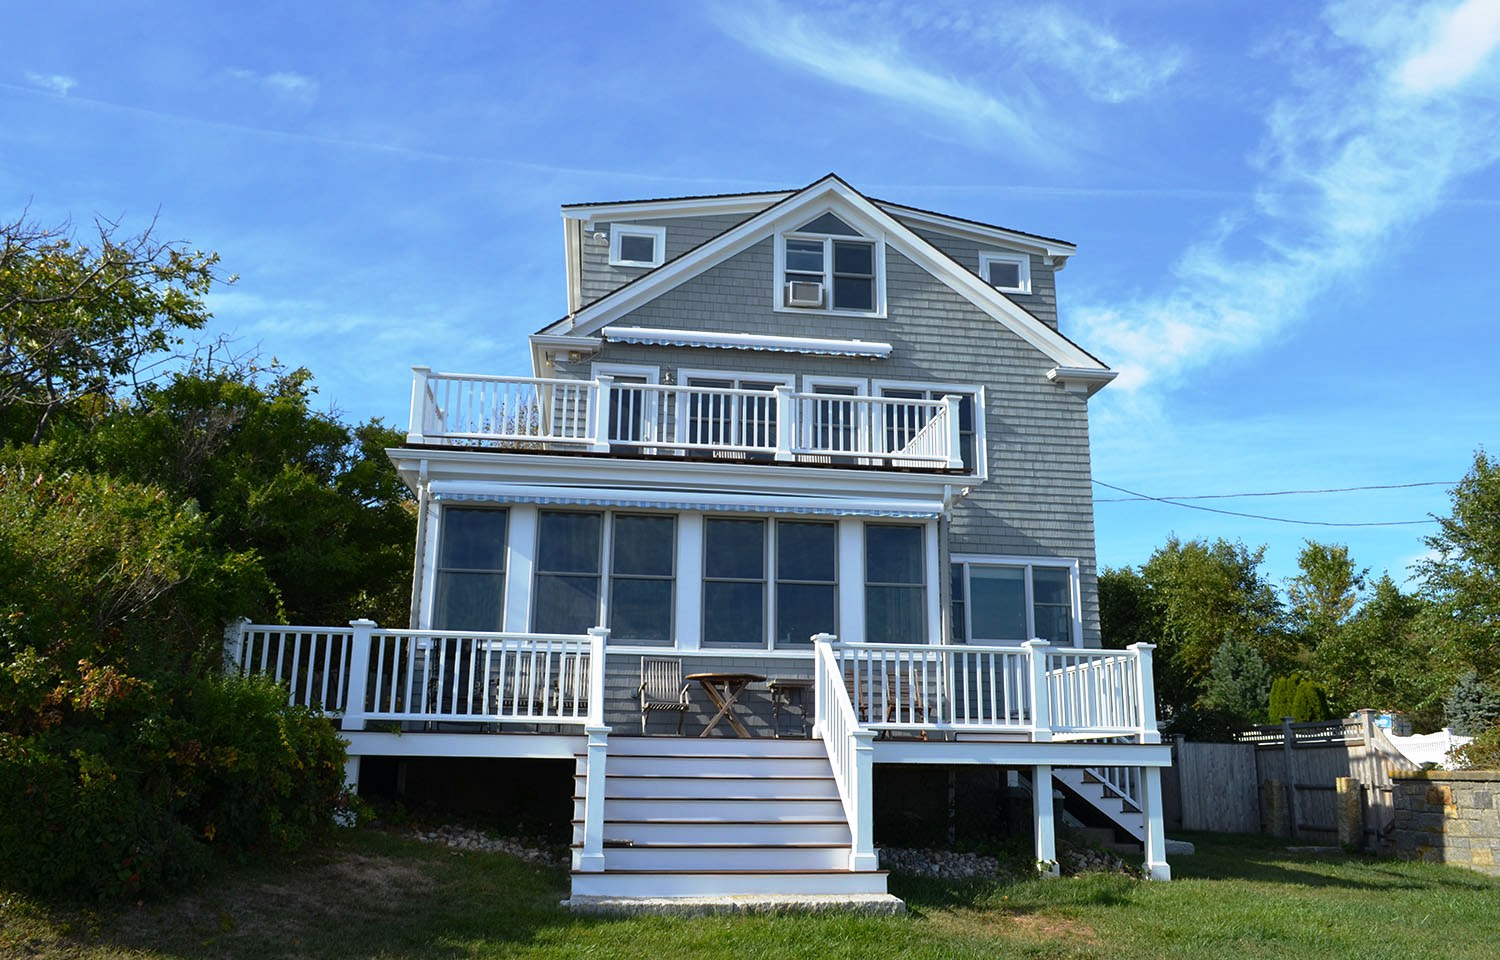 Rockport MA Winter Beach Rentals